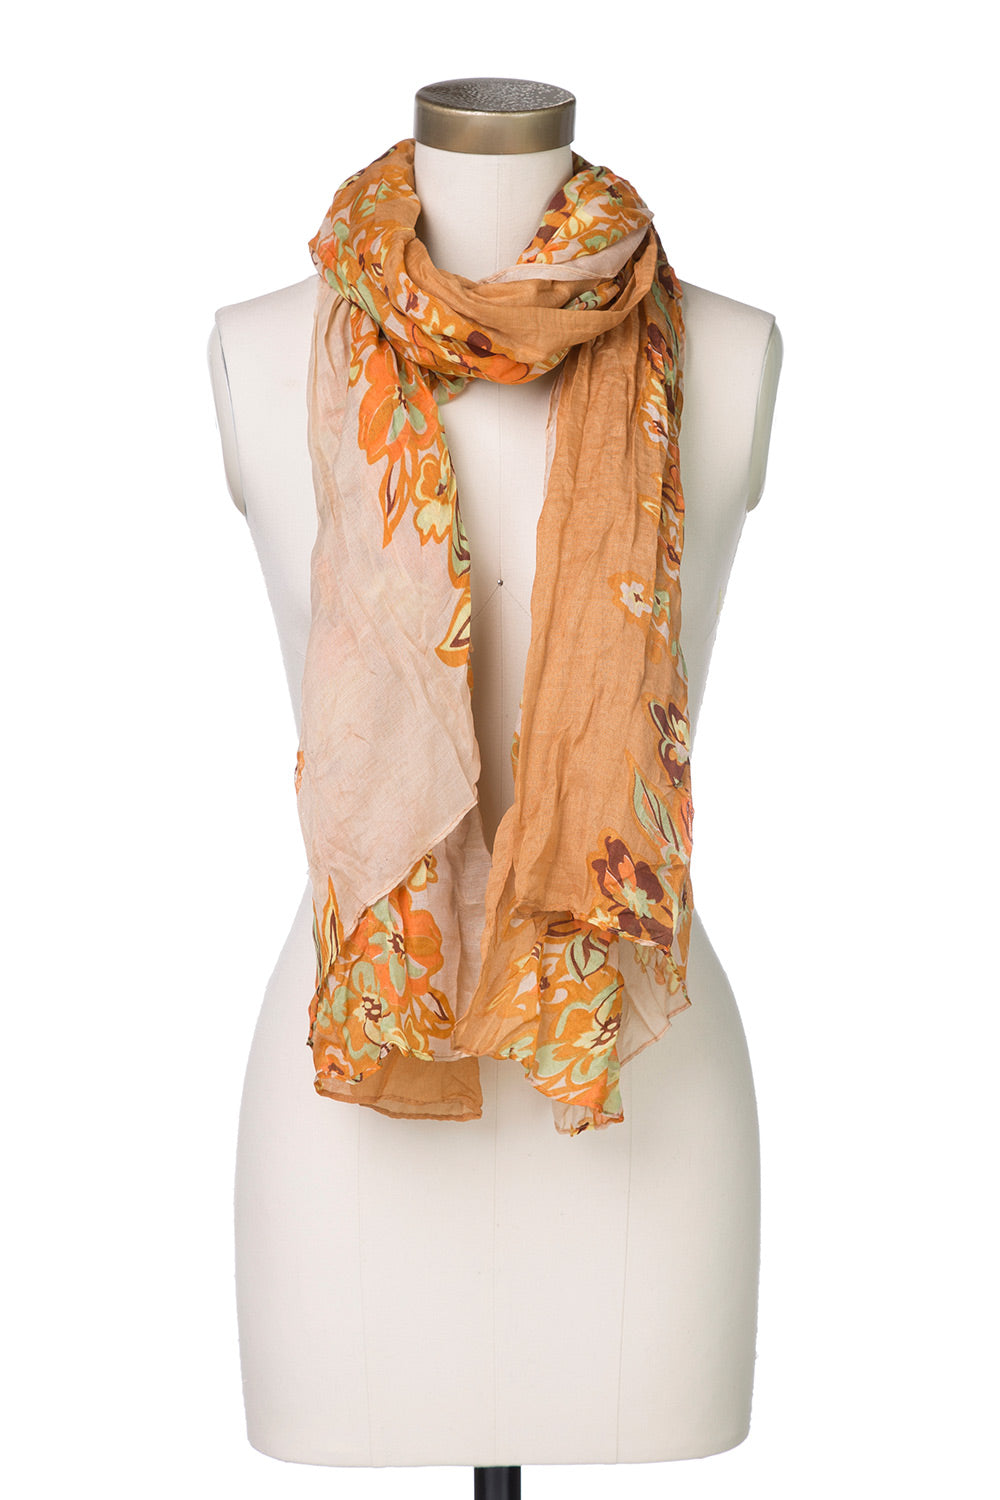 Type 3 Fierce Flowers Scarf